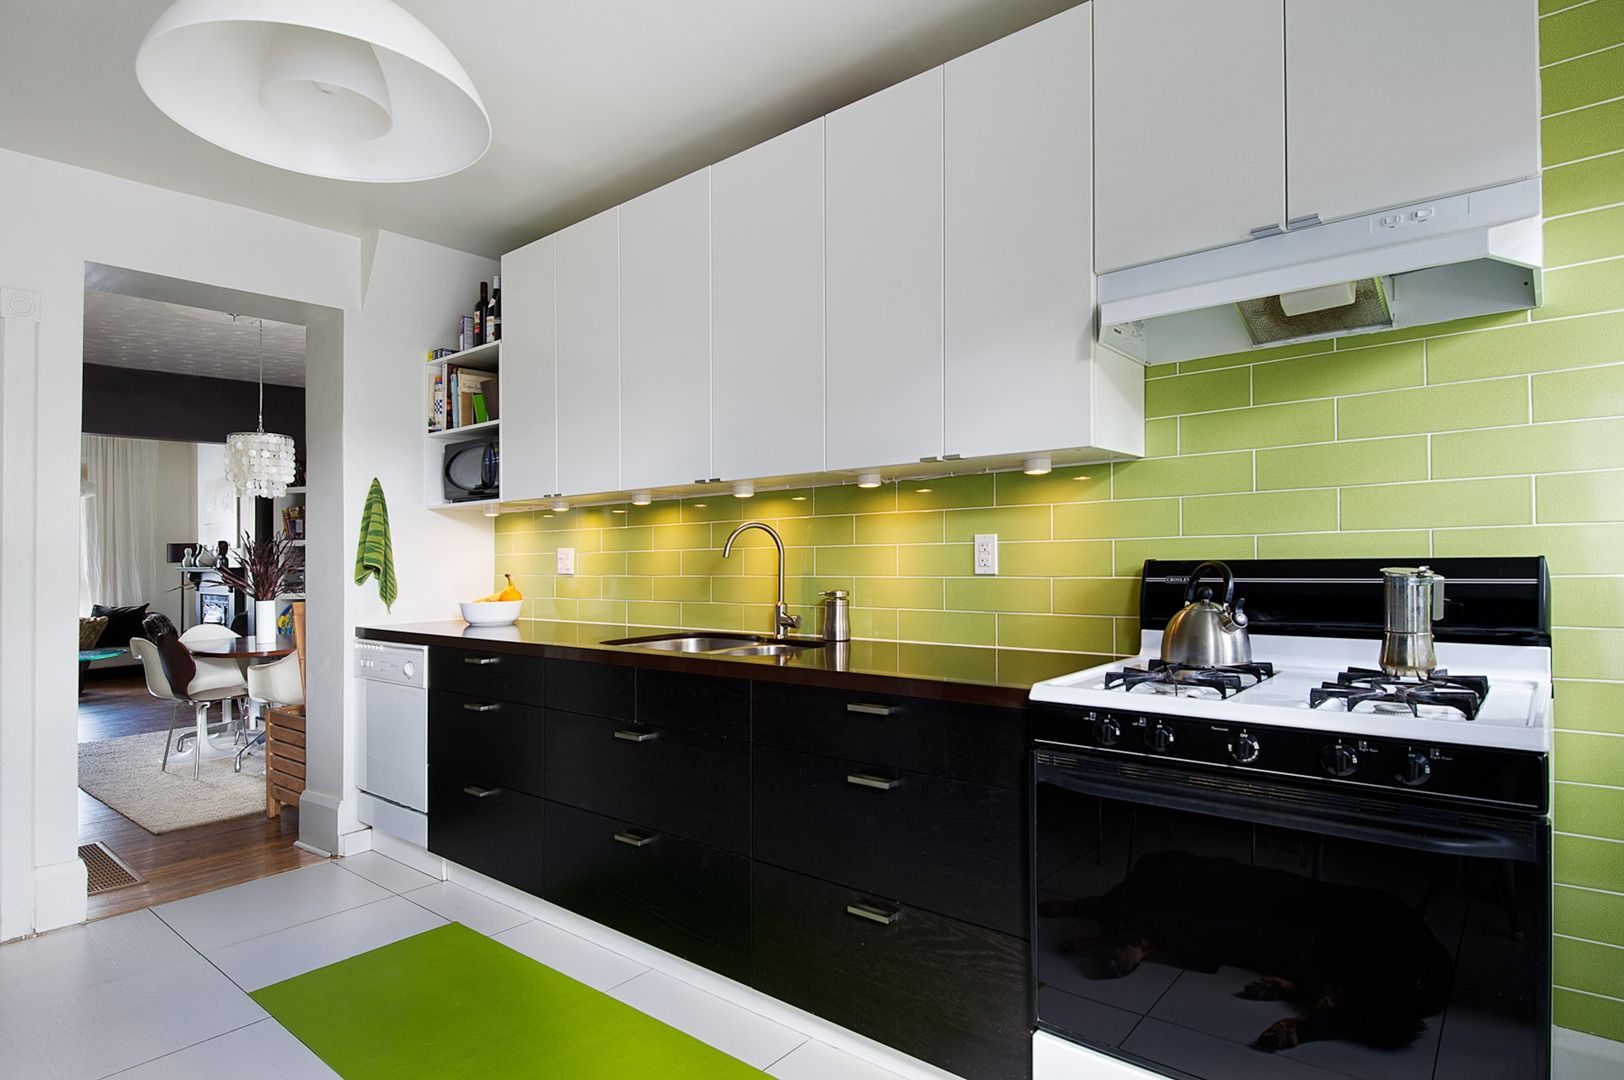 Choosing Best Kitchen Tile Ideas. Green backsplash and floor theme contributes to the optimistic kitchen design